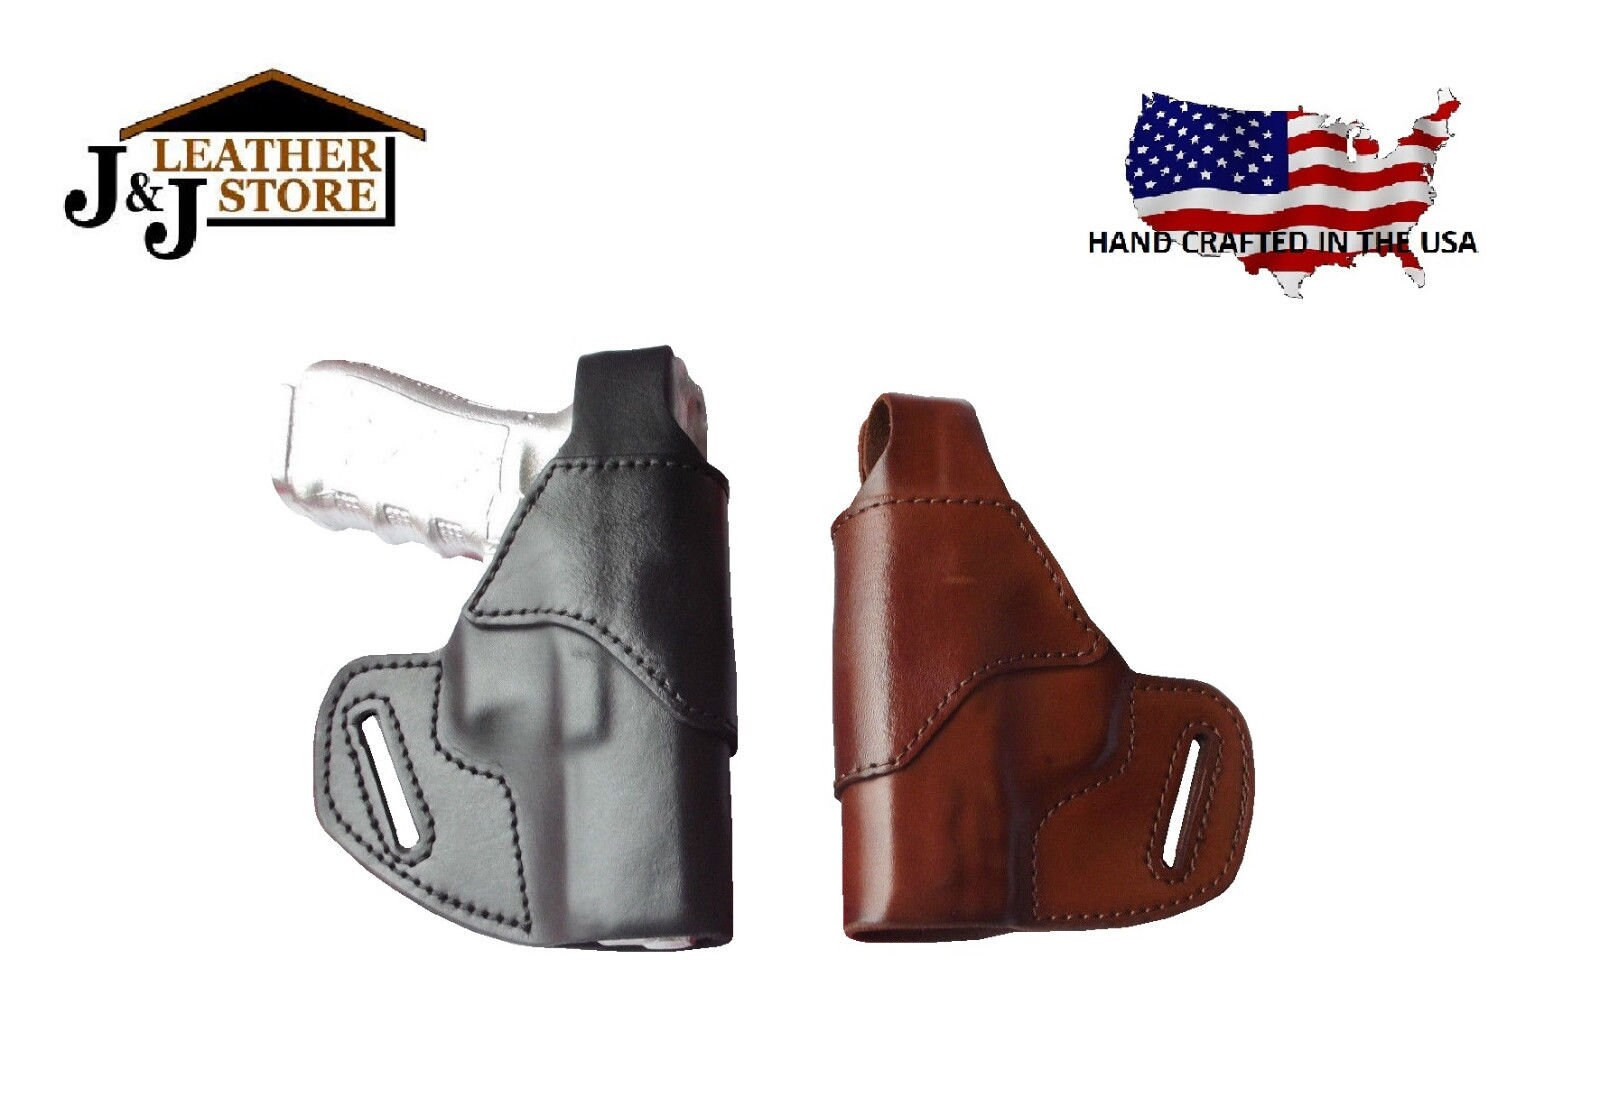 J&J Custom Fit Ruger LCP 2 II 380 W/ Viridian R5 Laser OWB Belt Carry  Formed Leather Holster With Thumb Break